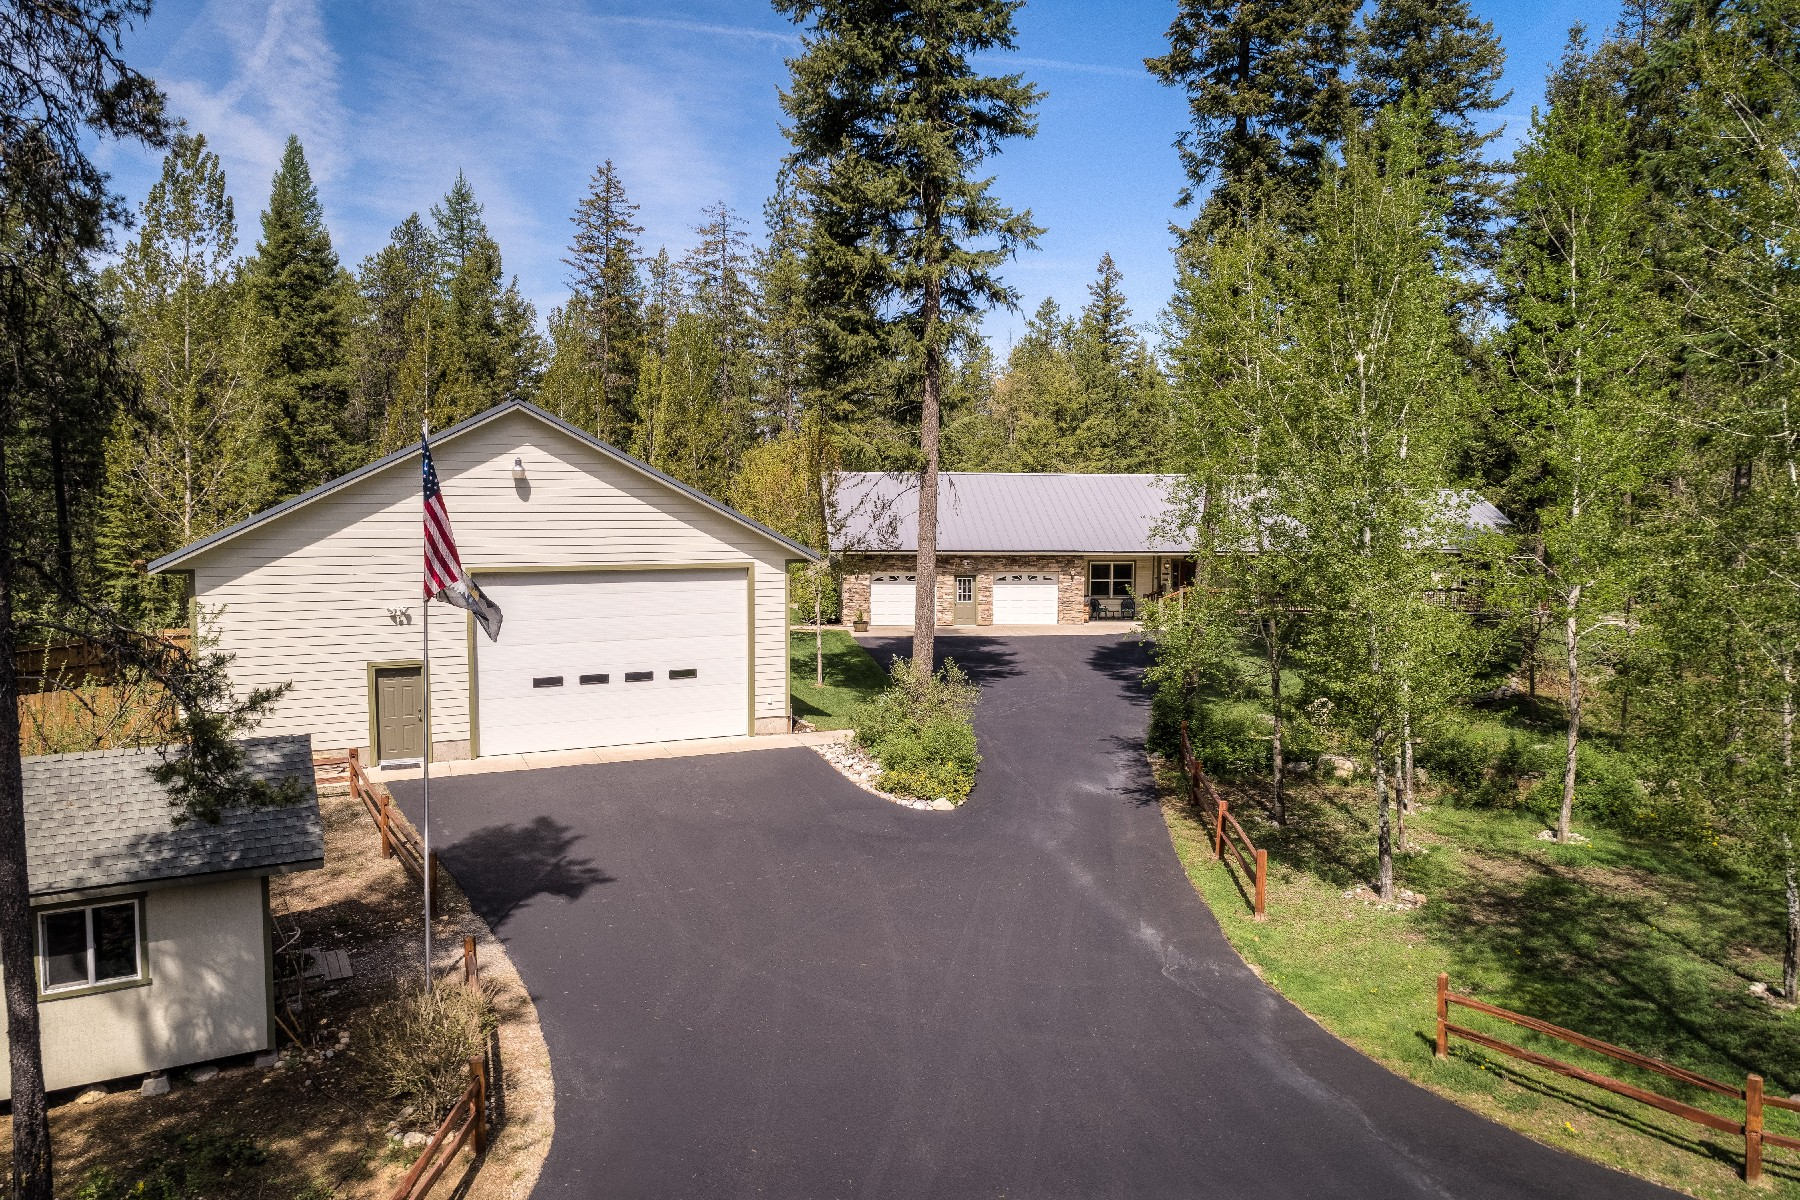 Single Family Home for Active at Spectacular Home And Acreage 33146 N Kelso Dr Spirit Lake, Idaho 83869 United States